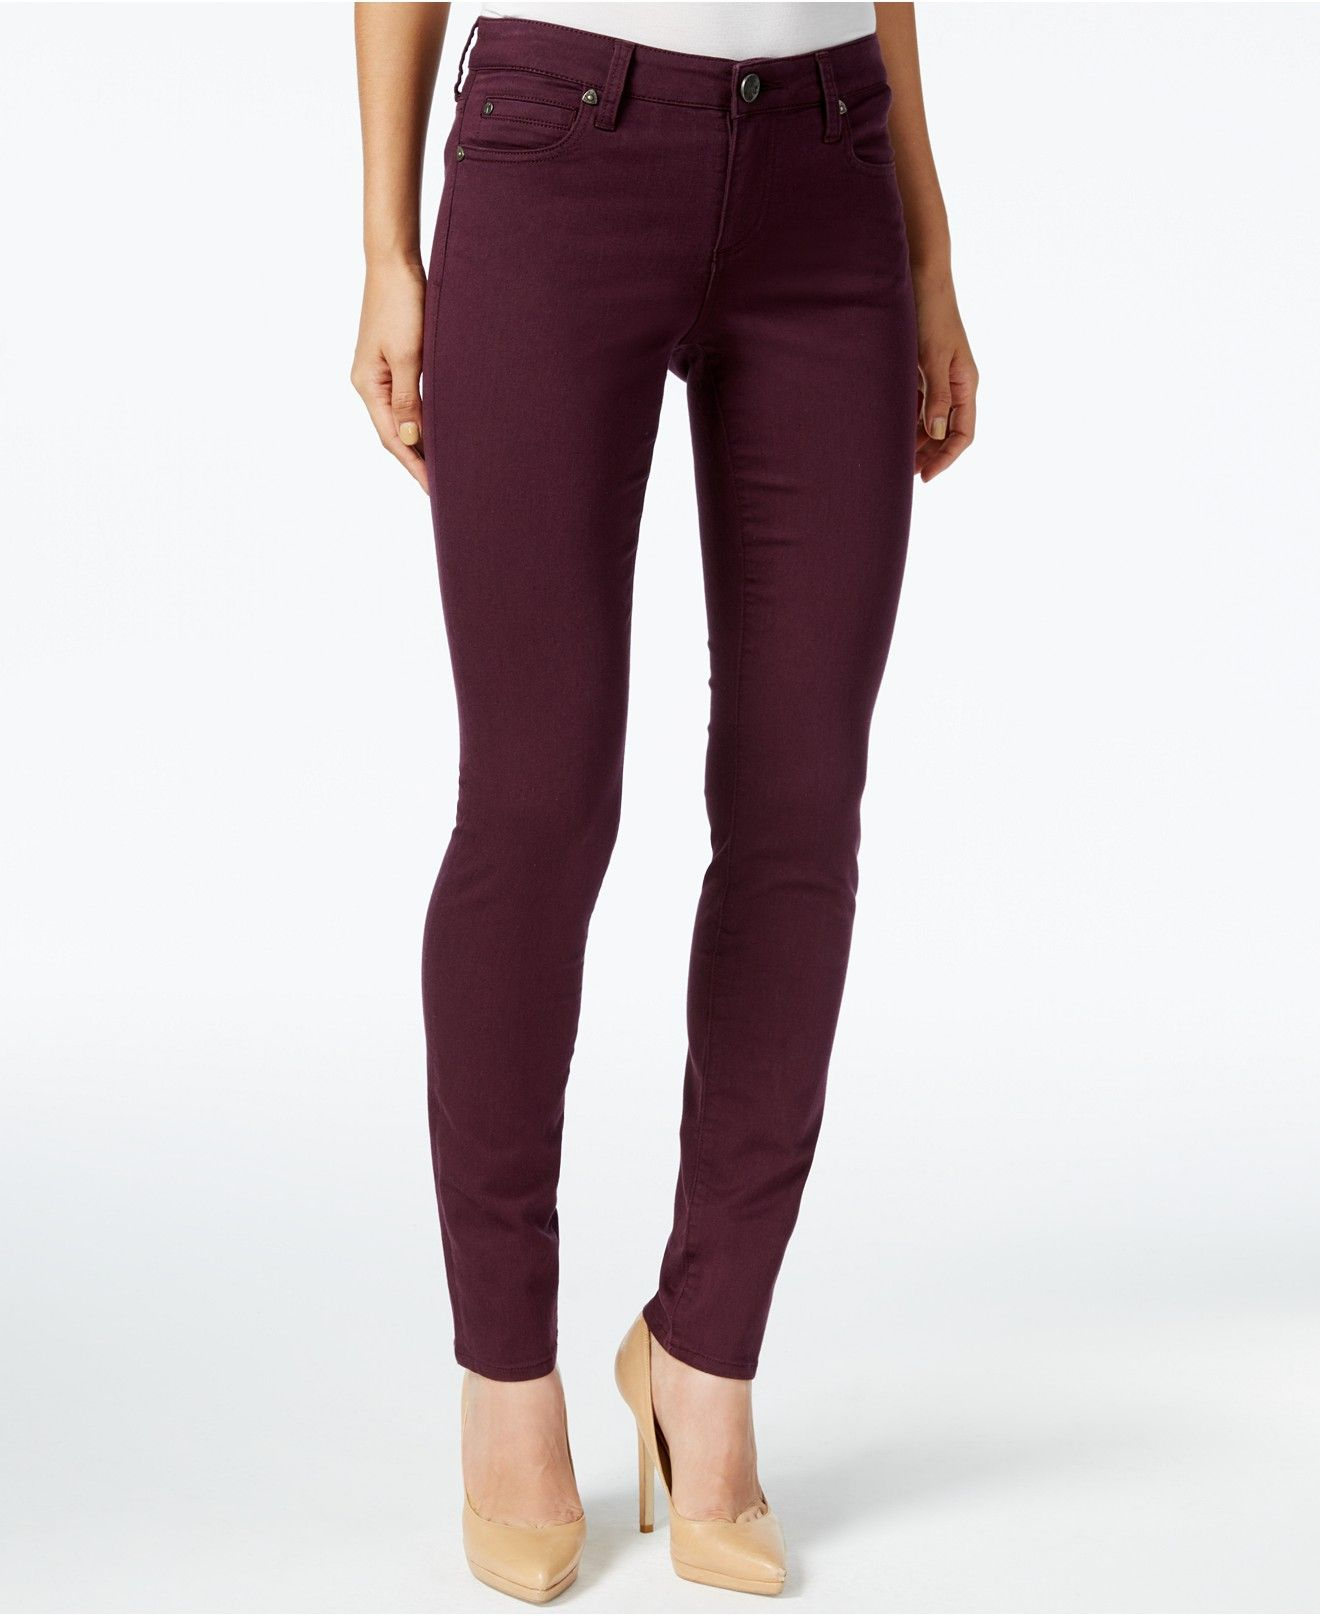 Kut from the Kloth Colored Skinny Jeans - Jeans - Women - Macyu0026#39;s | Style Inspiration | Pinterest ...